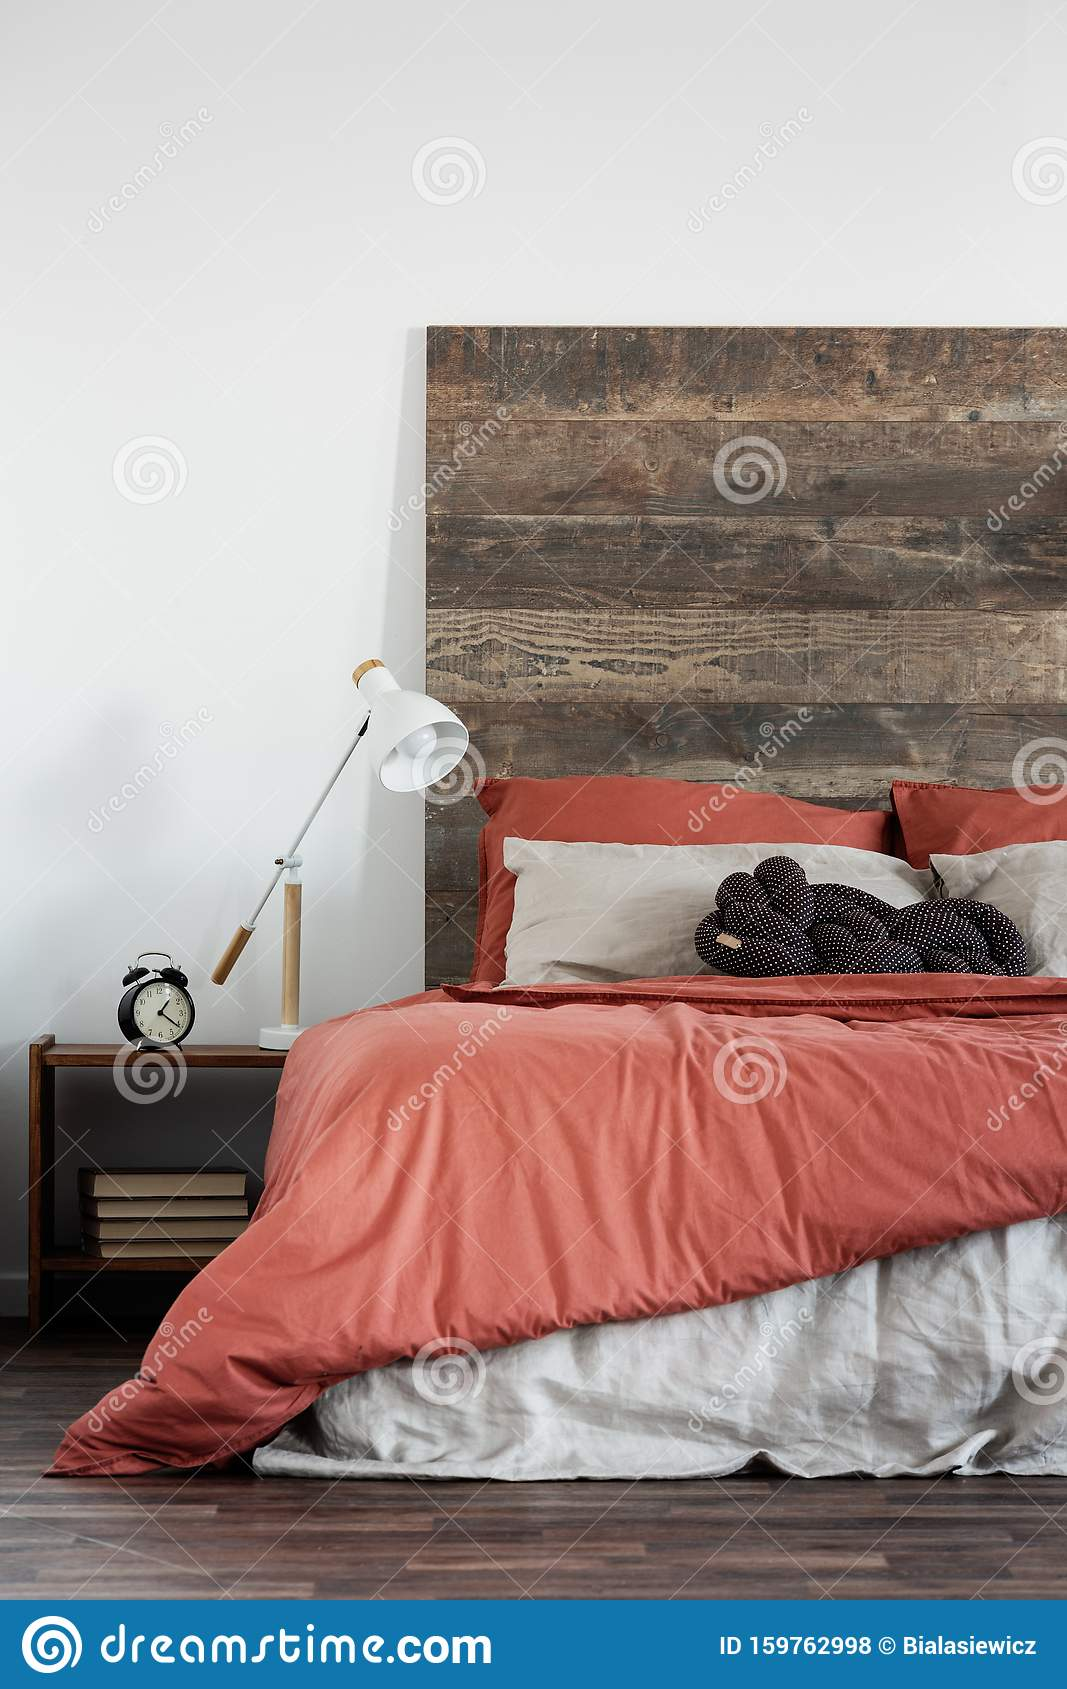 Trendy White Lamp Next To Black Clock On Wooden Nightstand Next To King Size Bed With Wooden Headboard Stock Photo Image Of Headboard Bedside 159762998